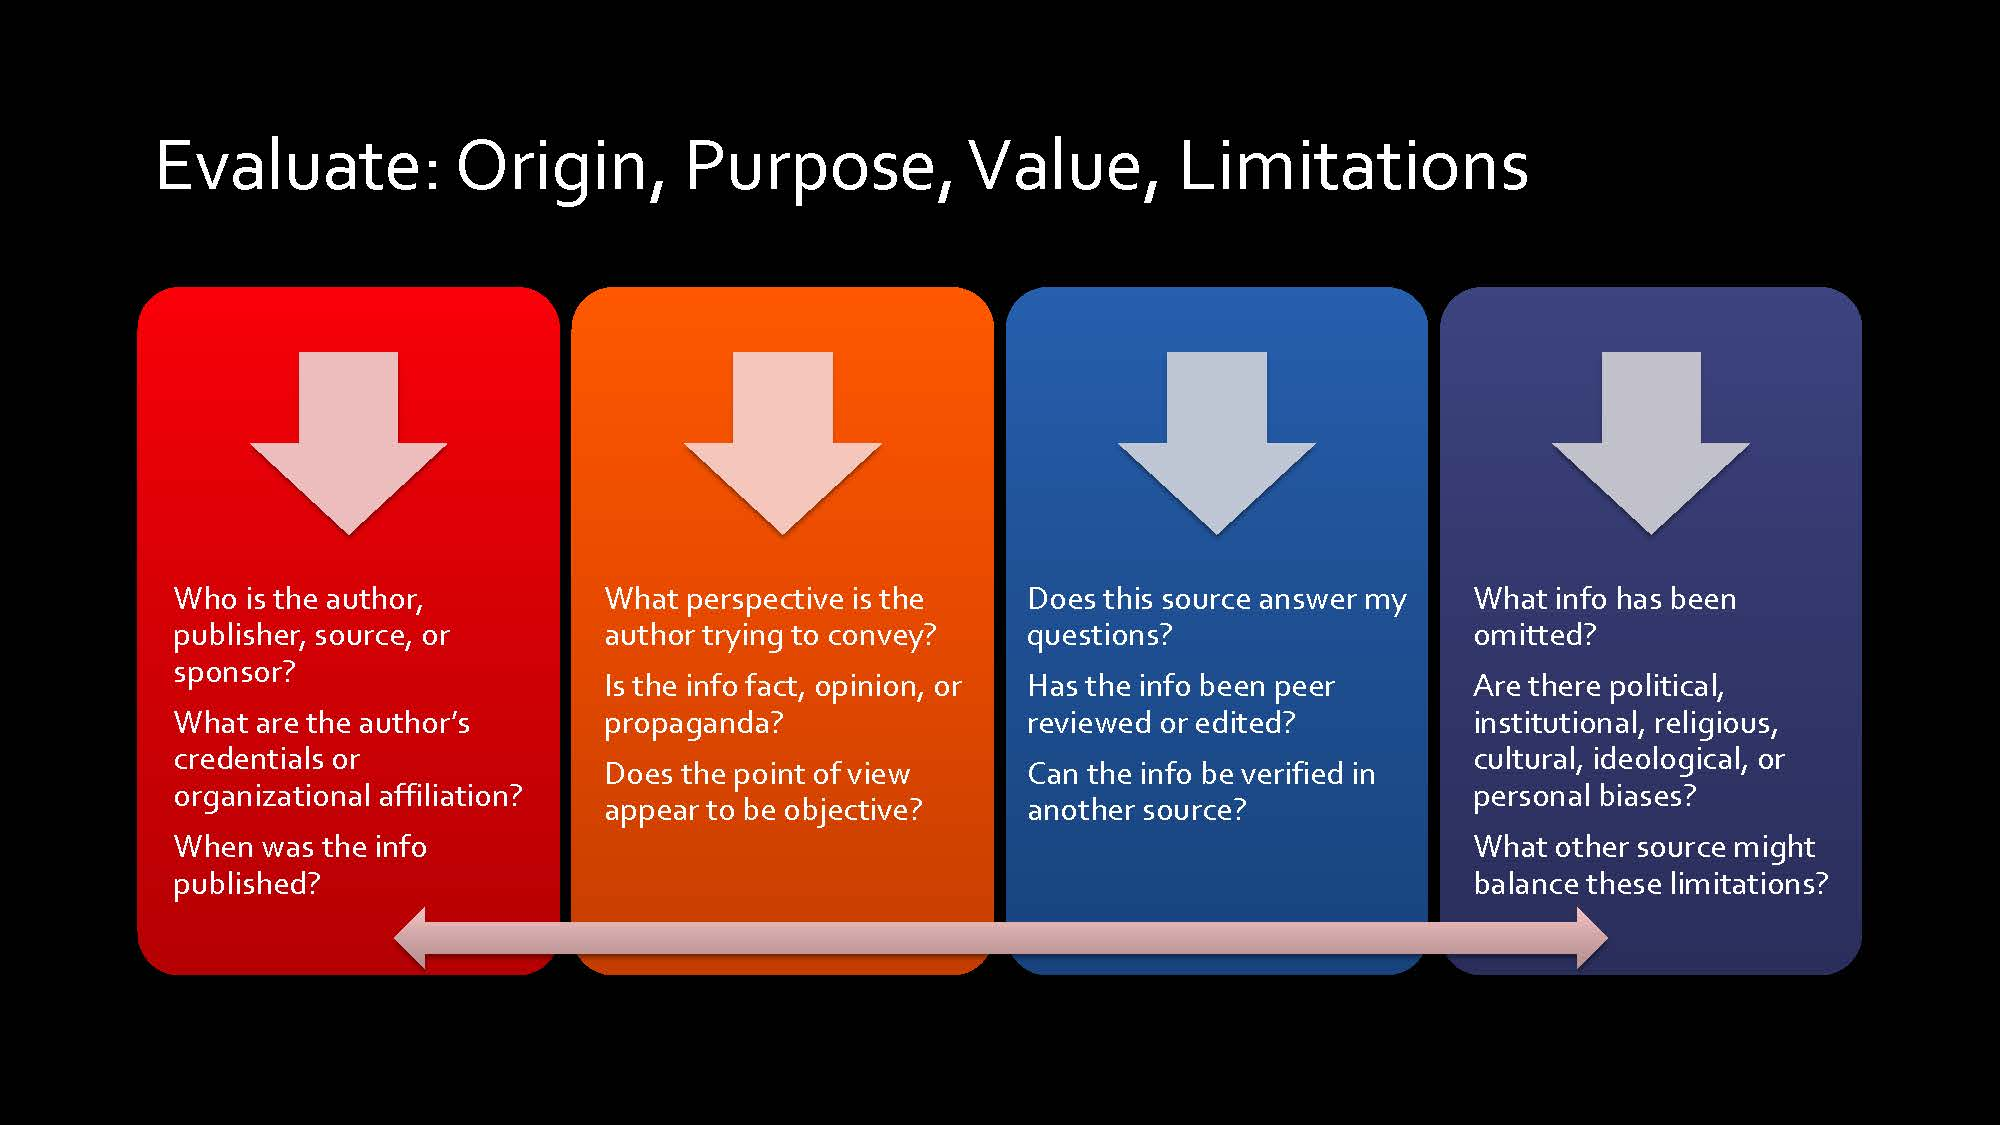 Evaluate a source's origin, purpose, value, and limitations